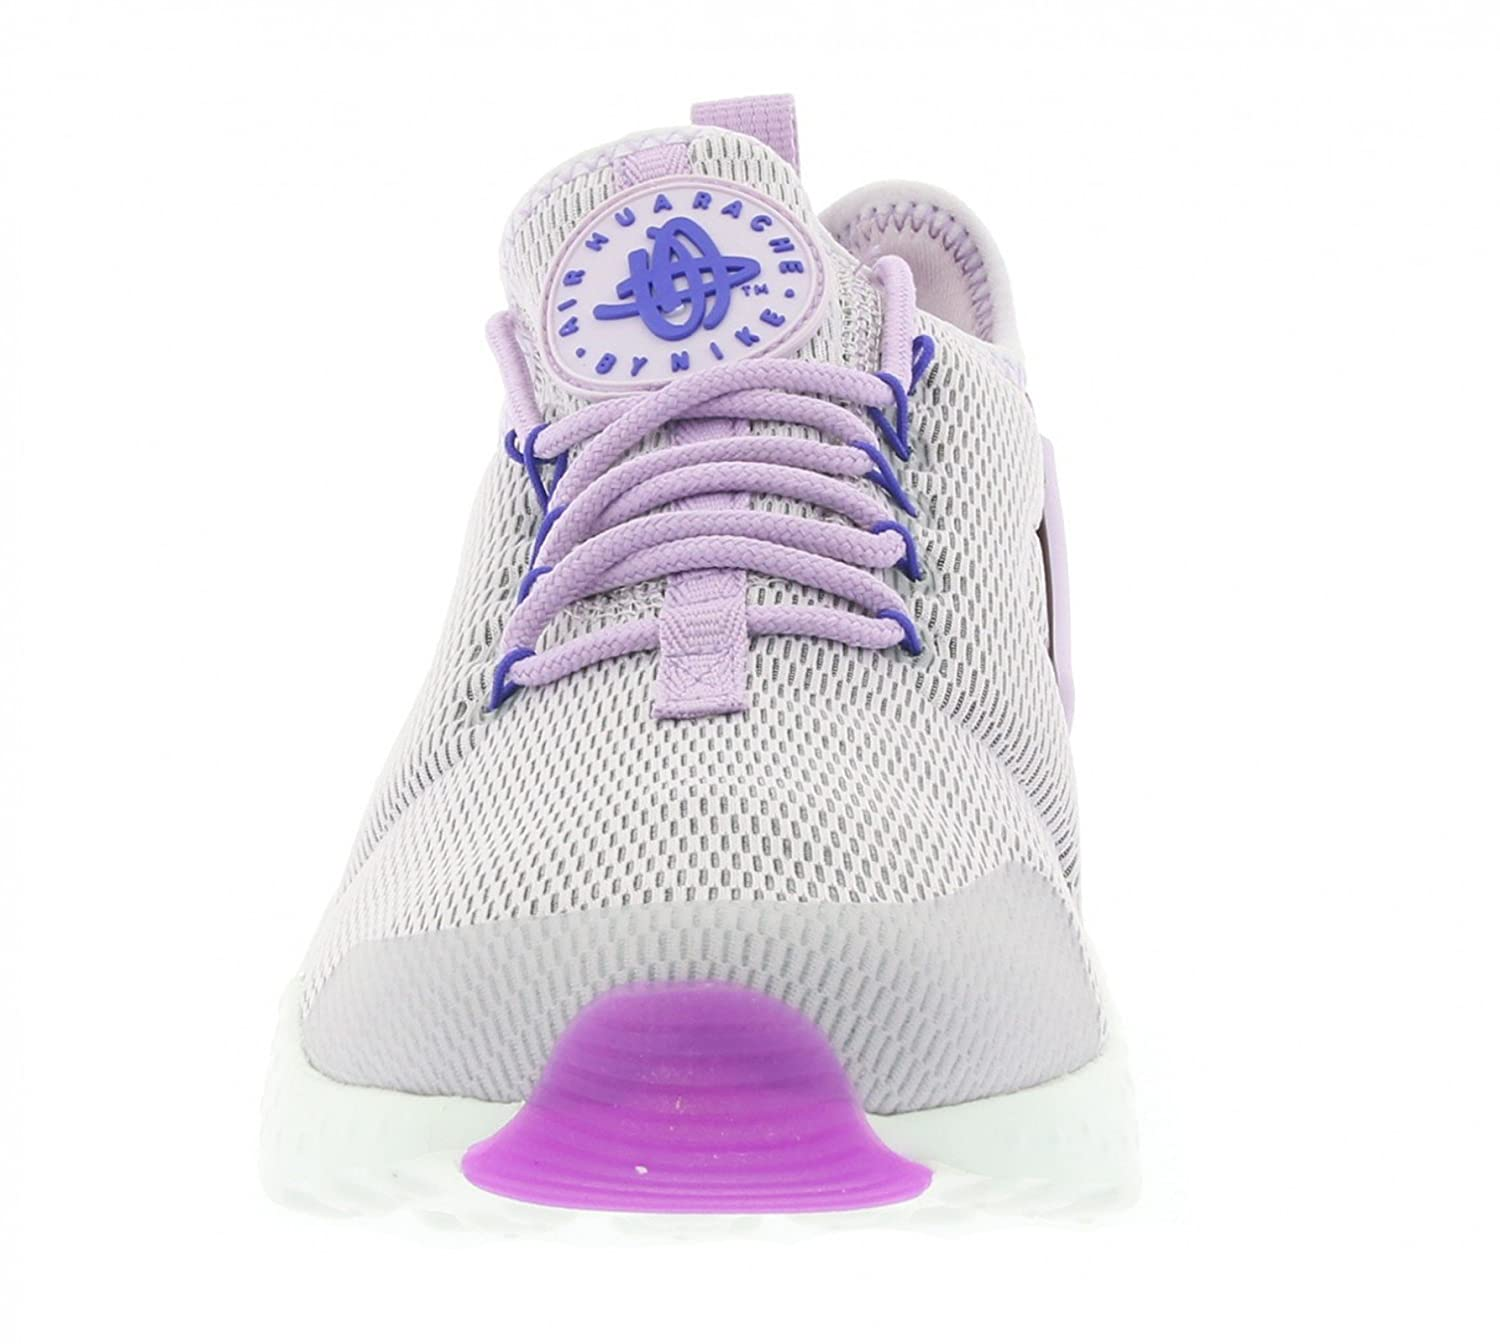 319980ed04d4 Nike AIR Huarache Run Ultra Womens Running-Shoes 819151-501 7.5 - Bleached  Lilac Hyper Violet 501  Amazon.in  Shoes   Handbags